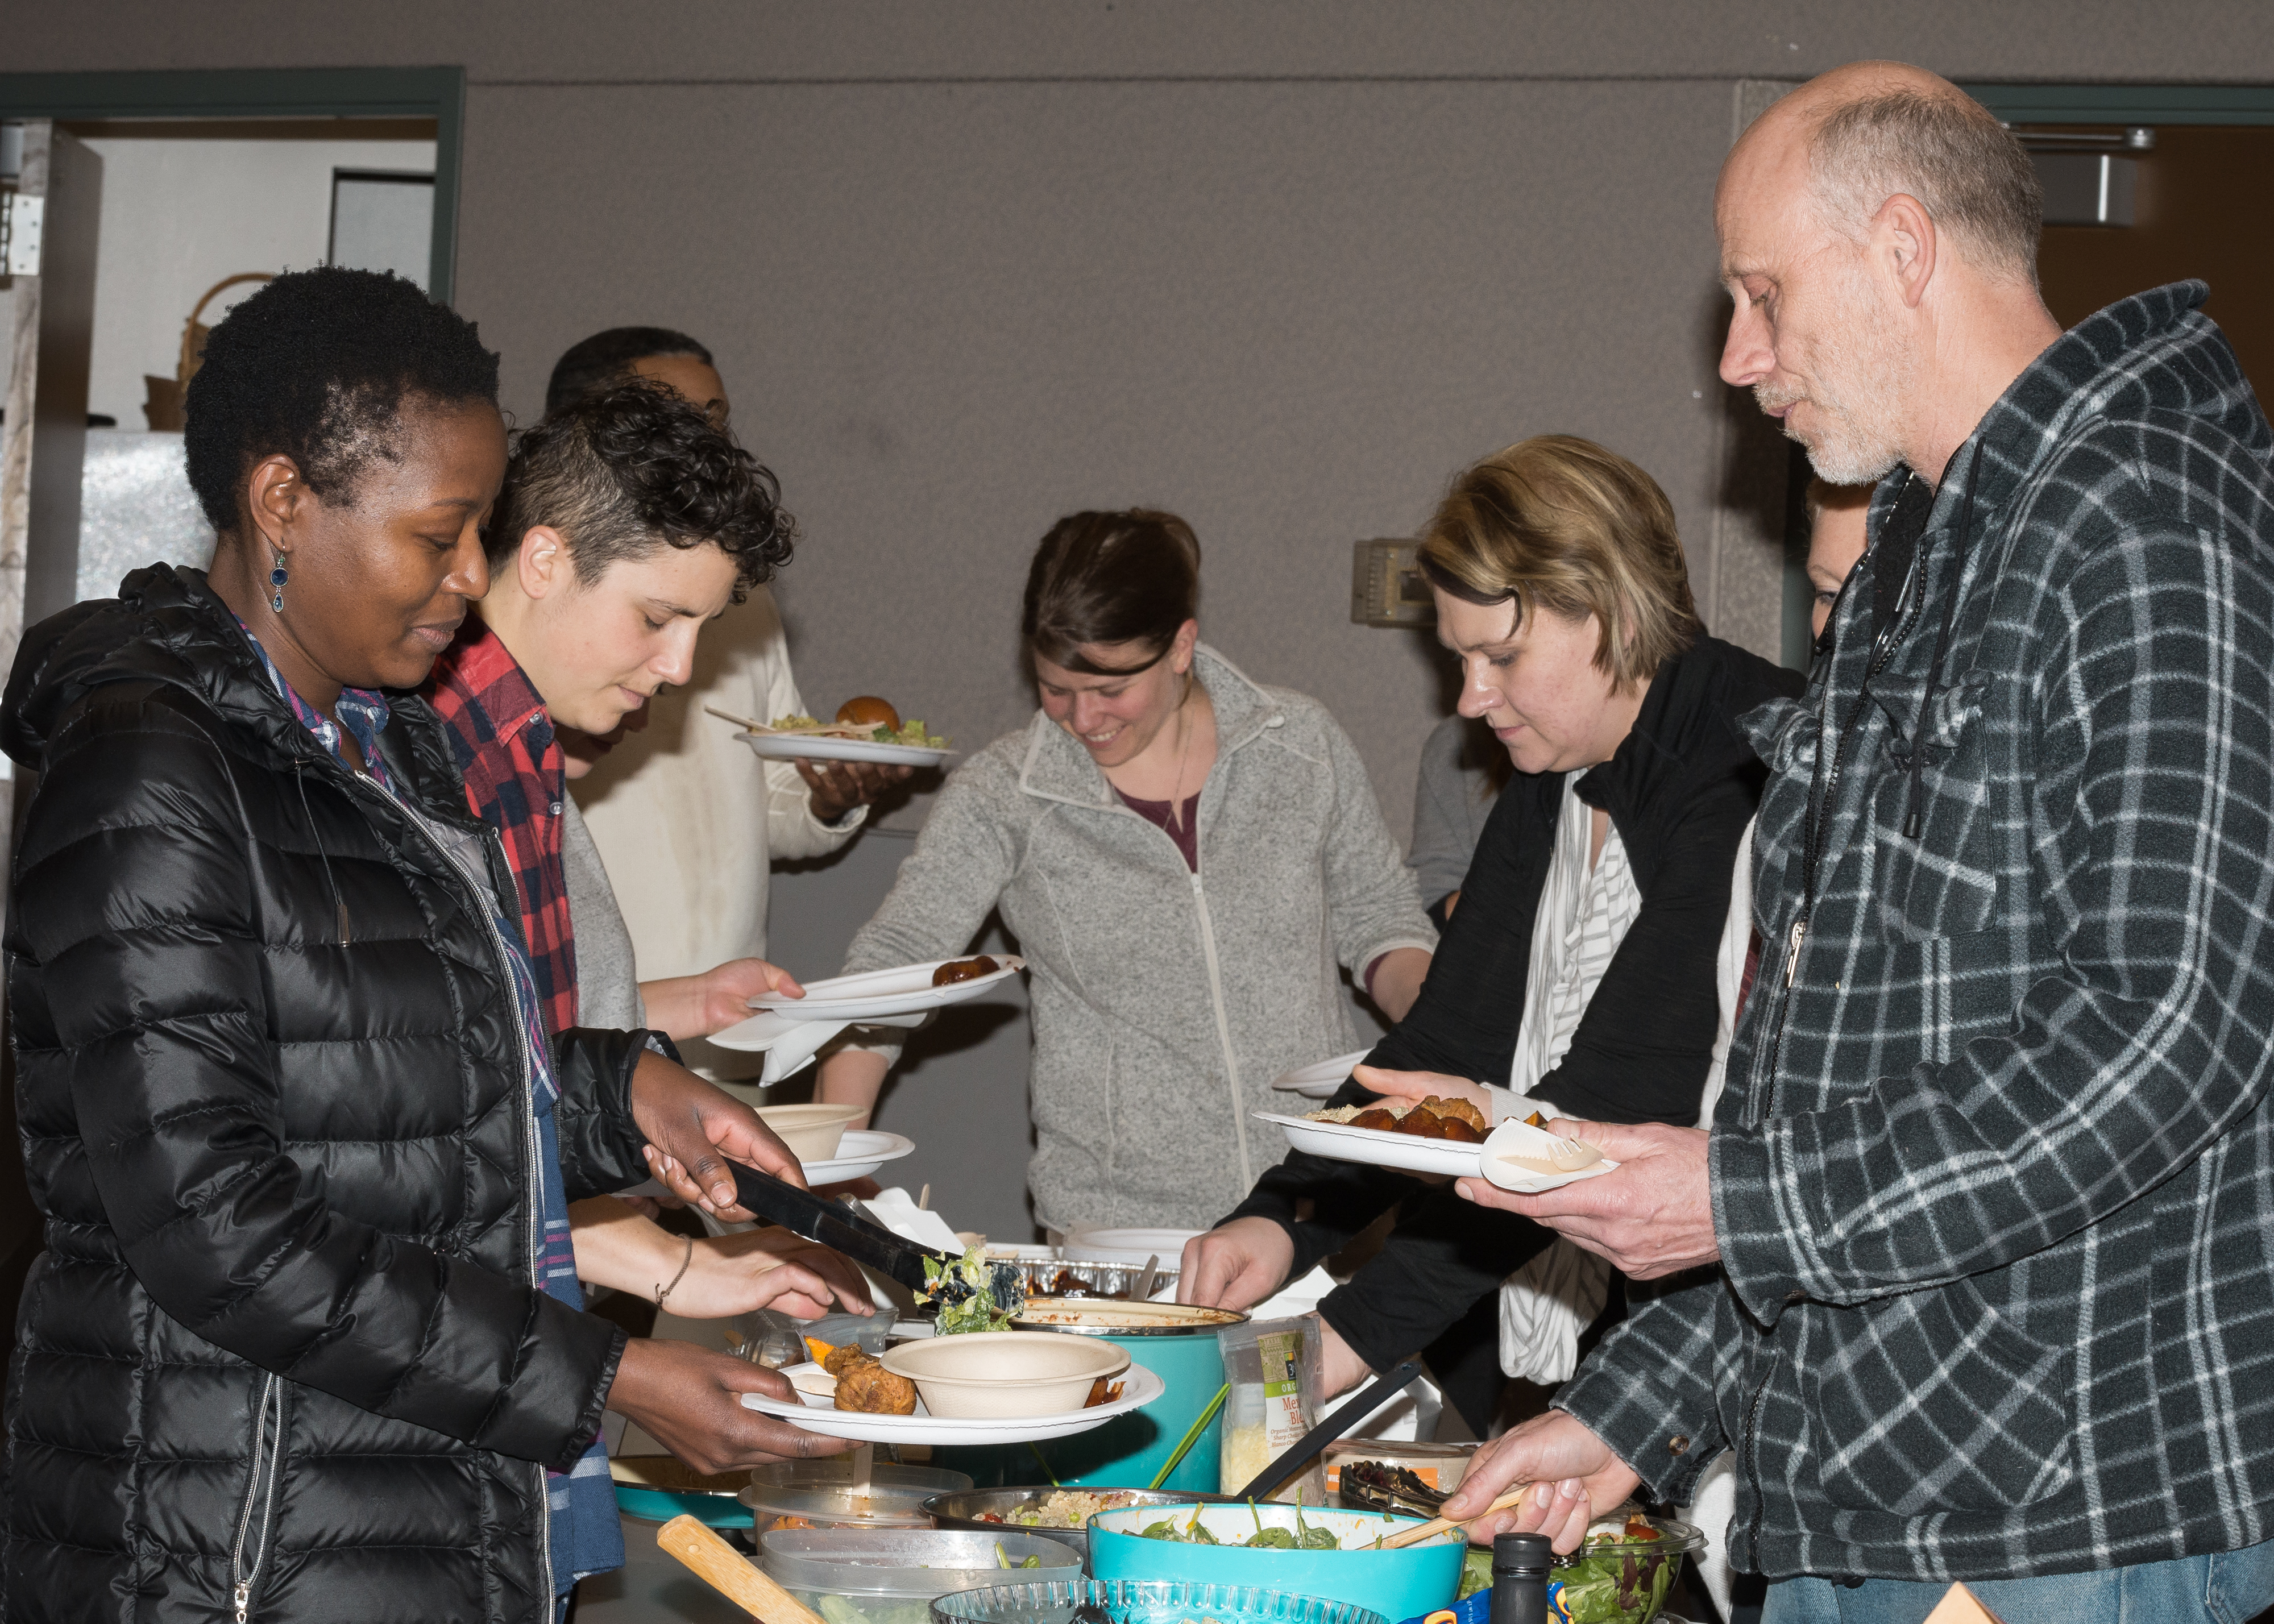 Tent City 3 residents and students, faculty and staff from the School of Nursing at a potluck dinner